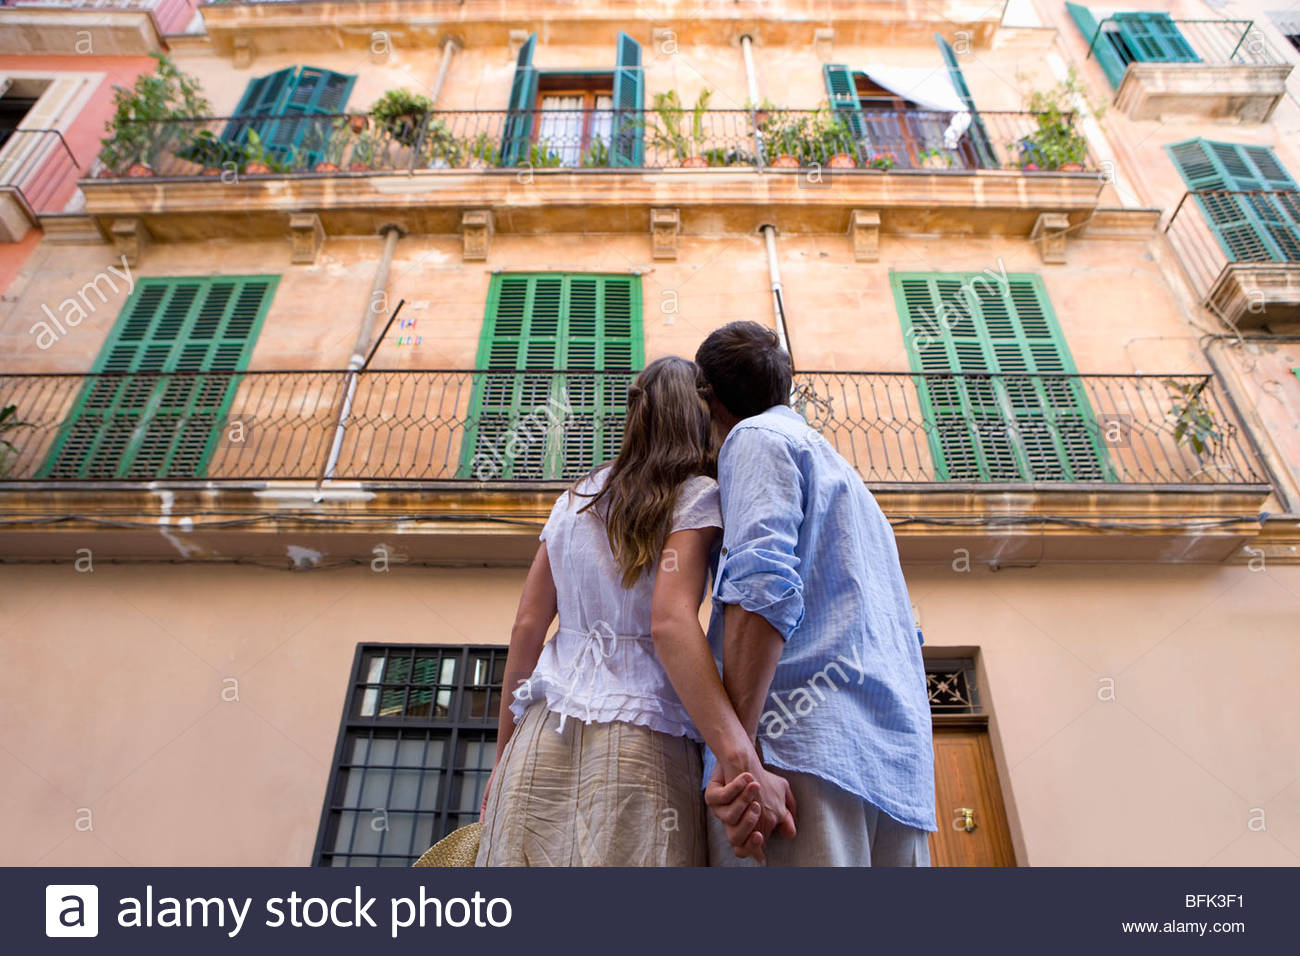 Couple holding hands and looking up at building - Stock Image